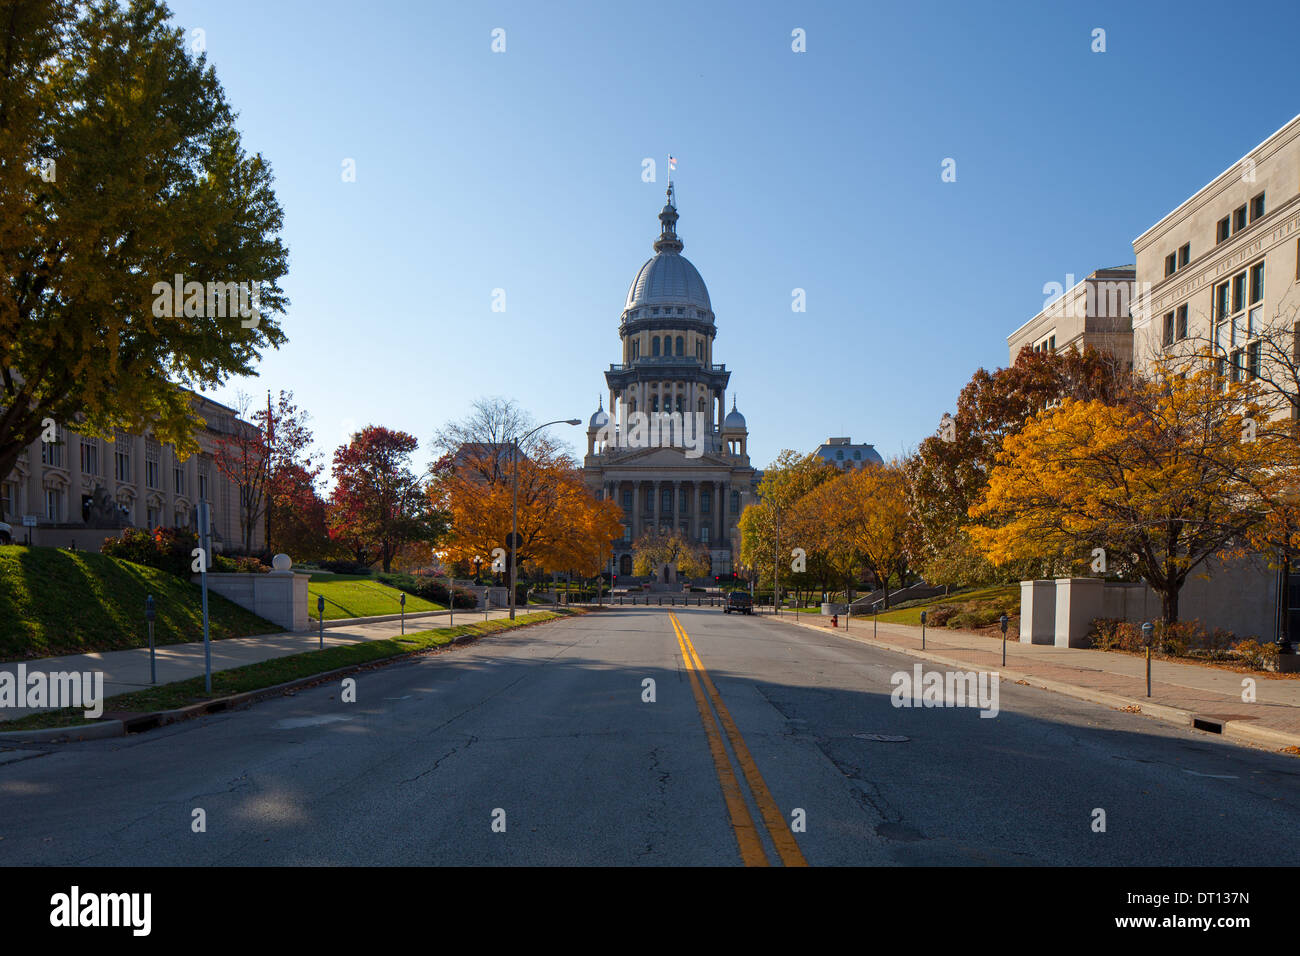 The Illinois Capitol Building in Springfield, IL. - Stock Image